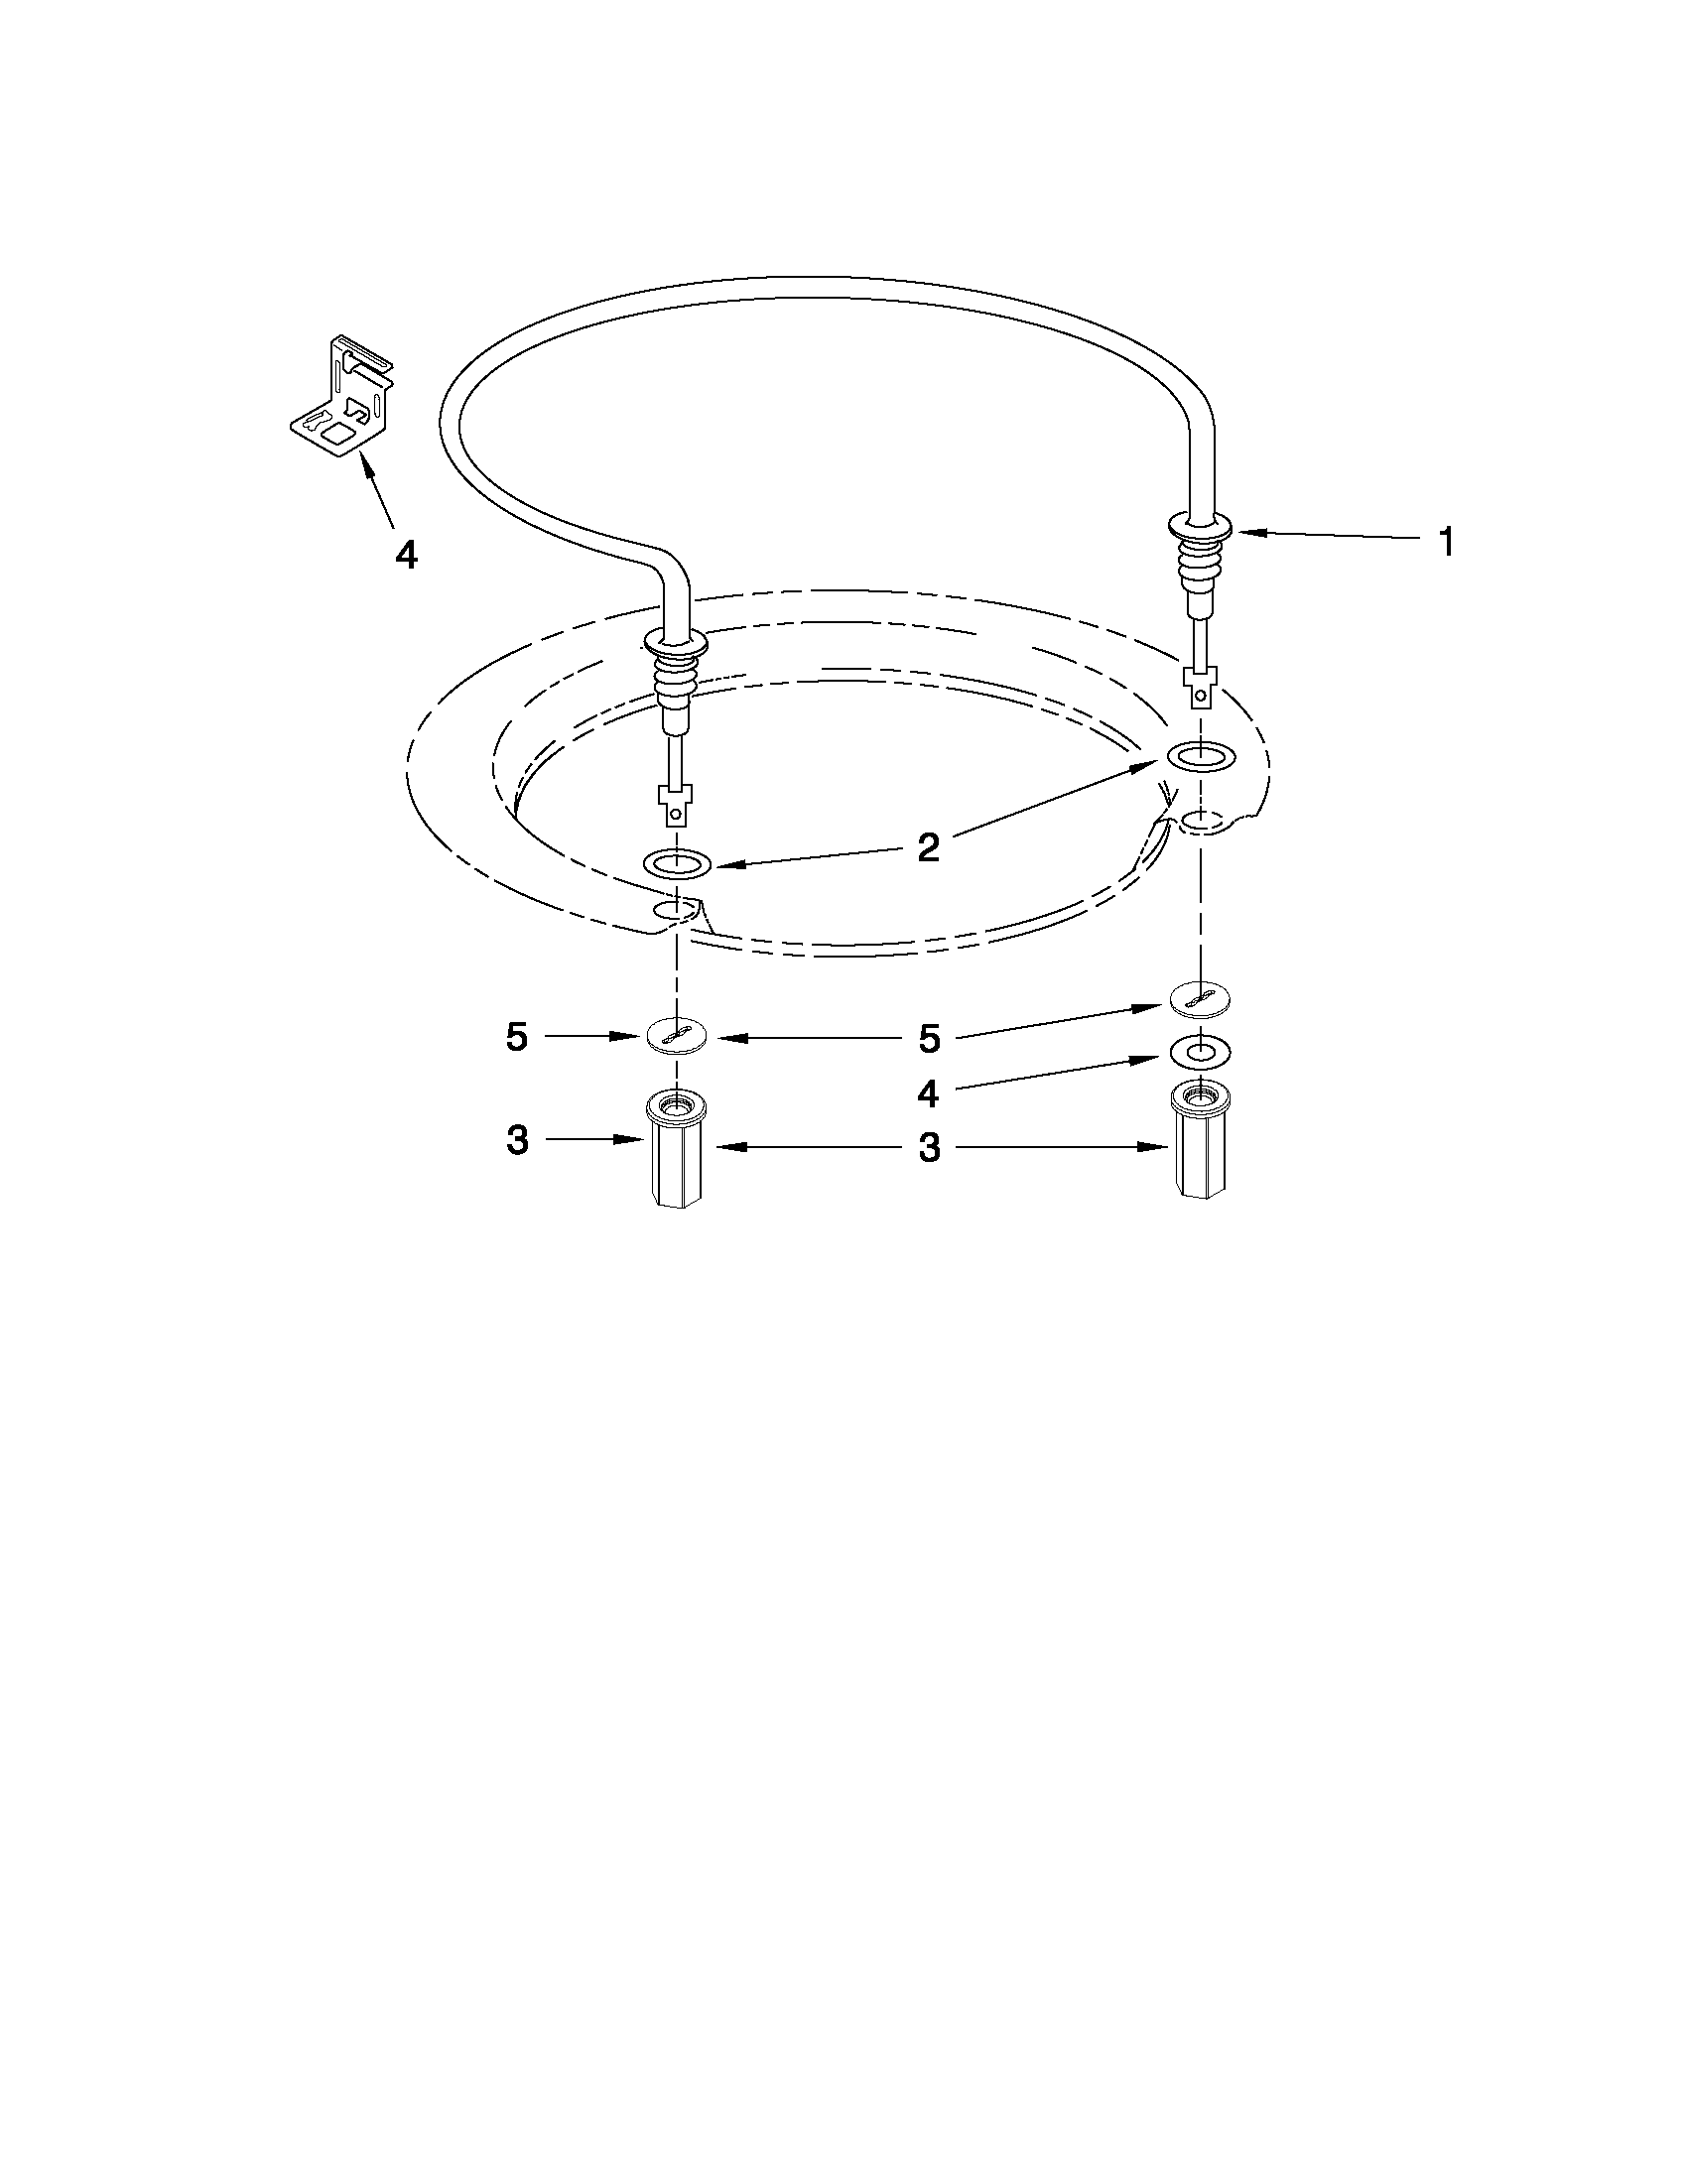 Whirlpool WDT710PAYM3 heater parts diagram